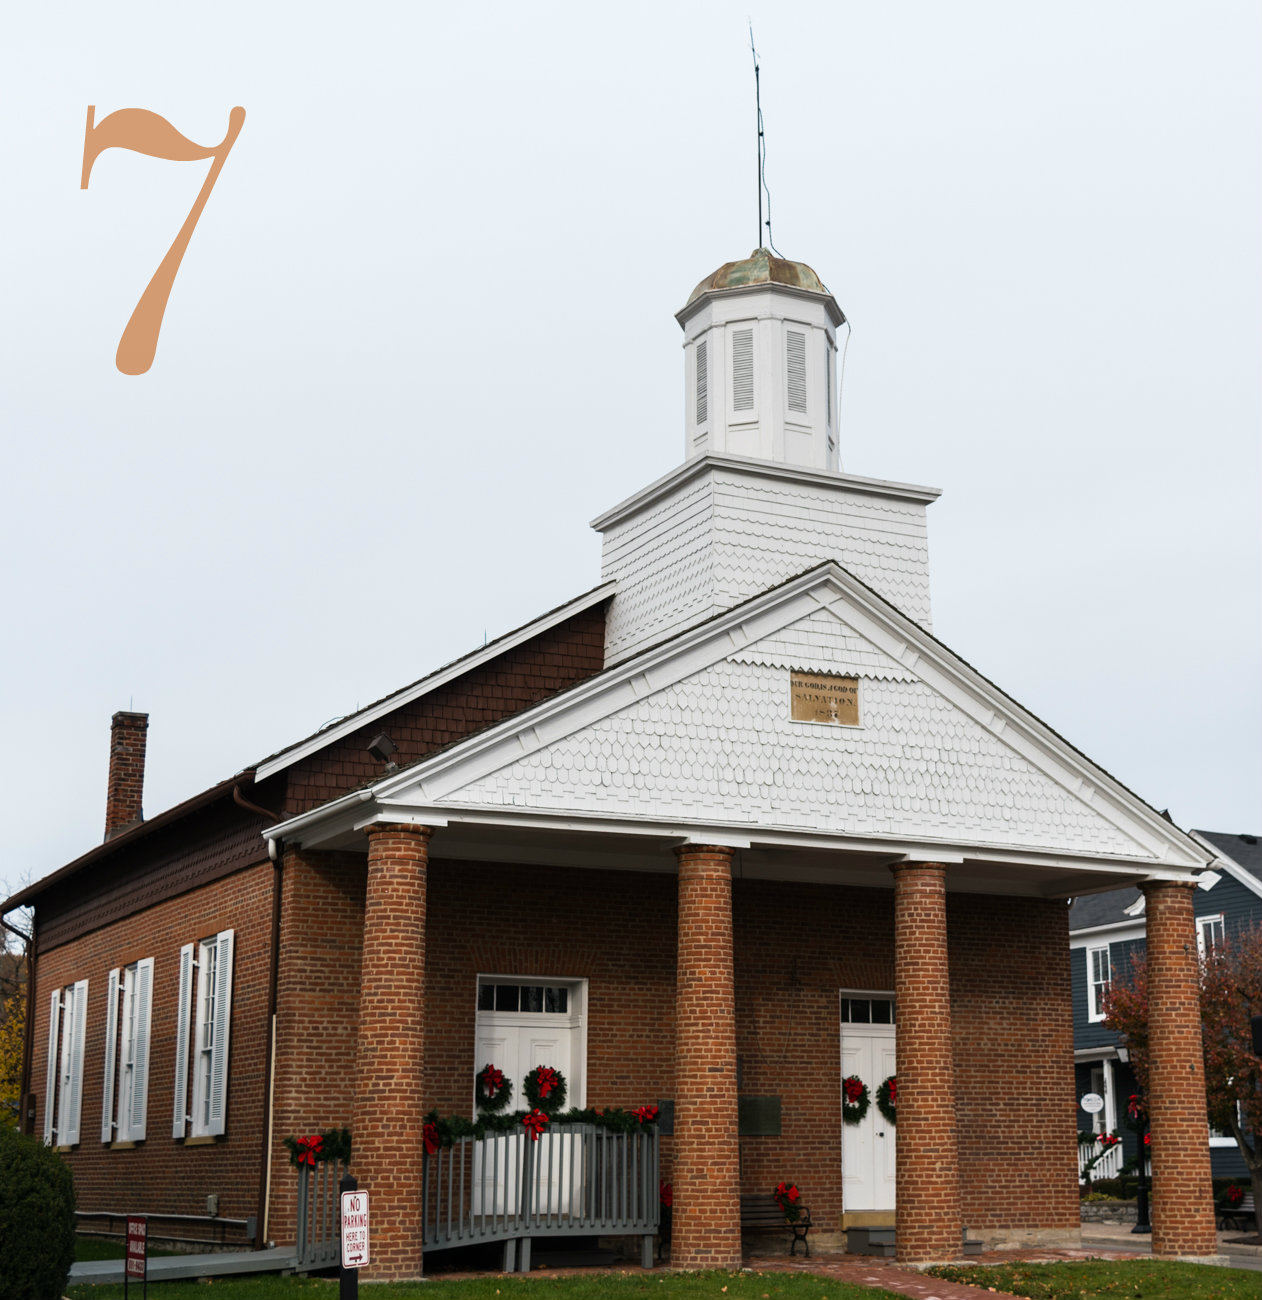 #7 - The city of Montgomery, just north of Cincinnati, is old. Like, really old. Case in point: The Universalist Church (which is pictured) was built in 1837. / Image: Phil Armstrong, Cincinnati Refined